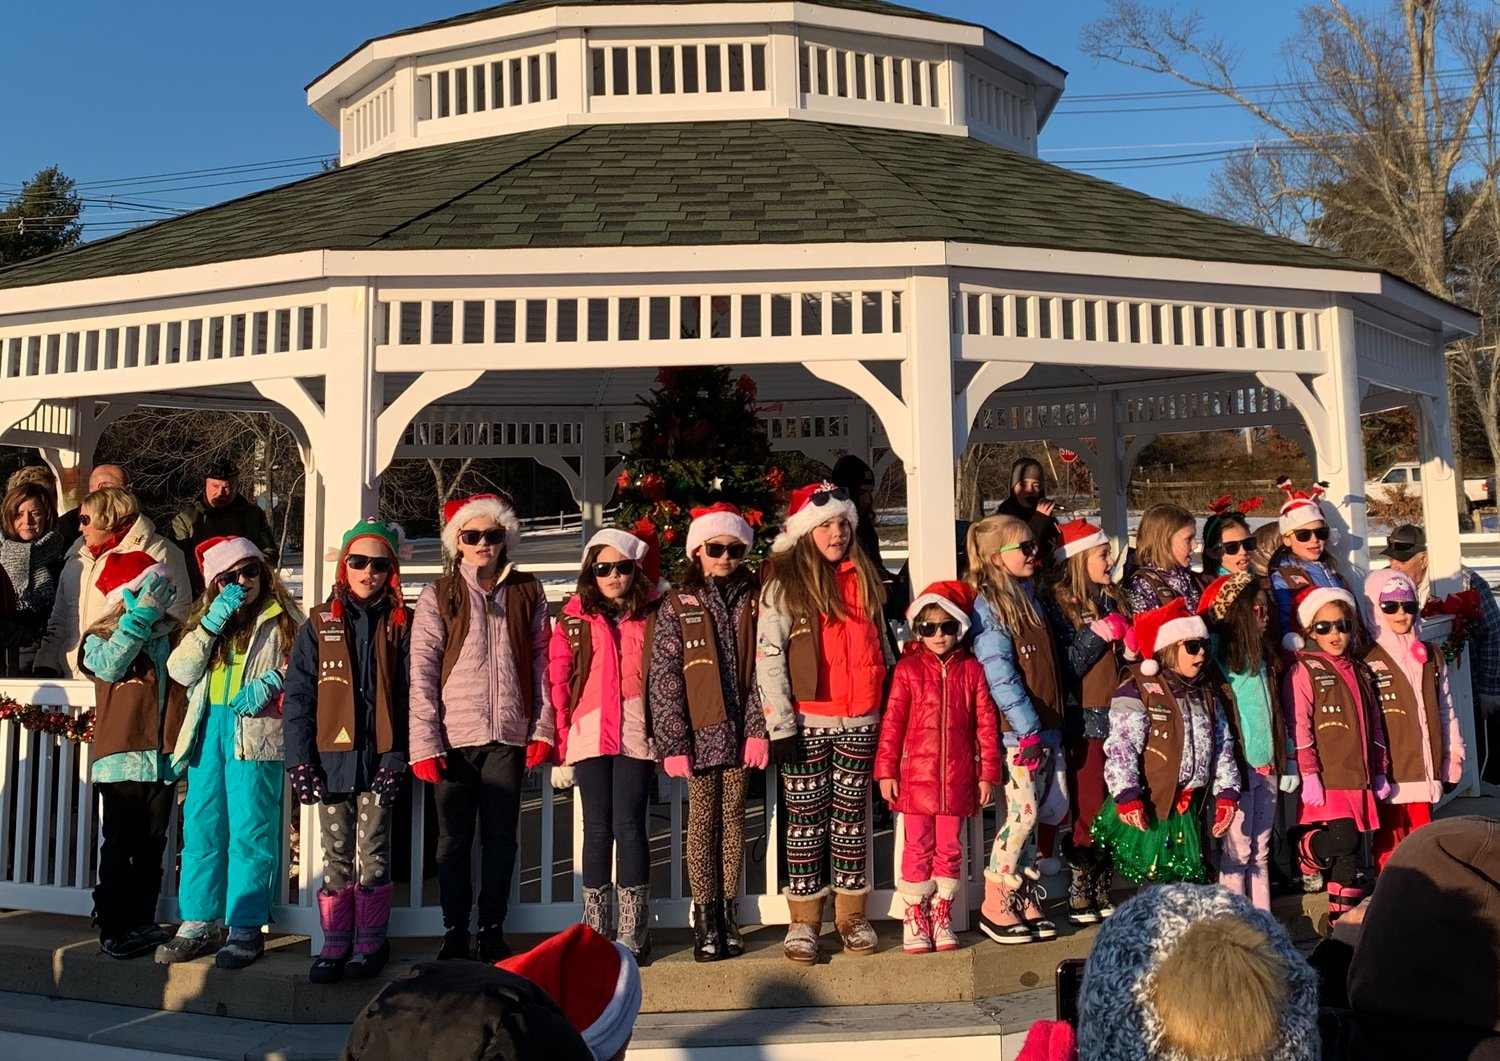 On December 7, 2019, Girl Scouts Brownie troop #694 sang holiday songs and performed a dance for the Rehoboth Tree Lighting, along with many other Girl Scouts in attendance.